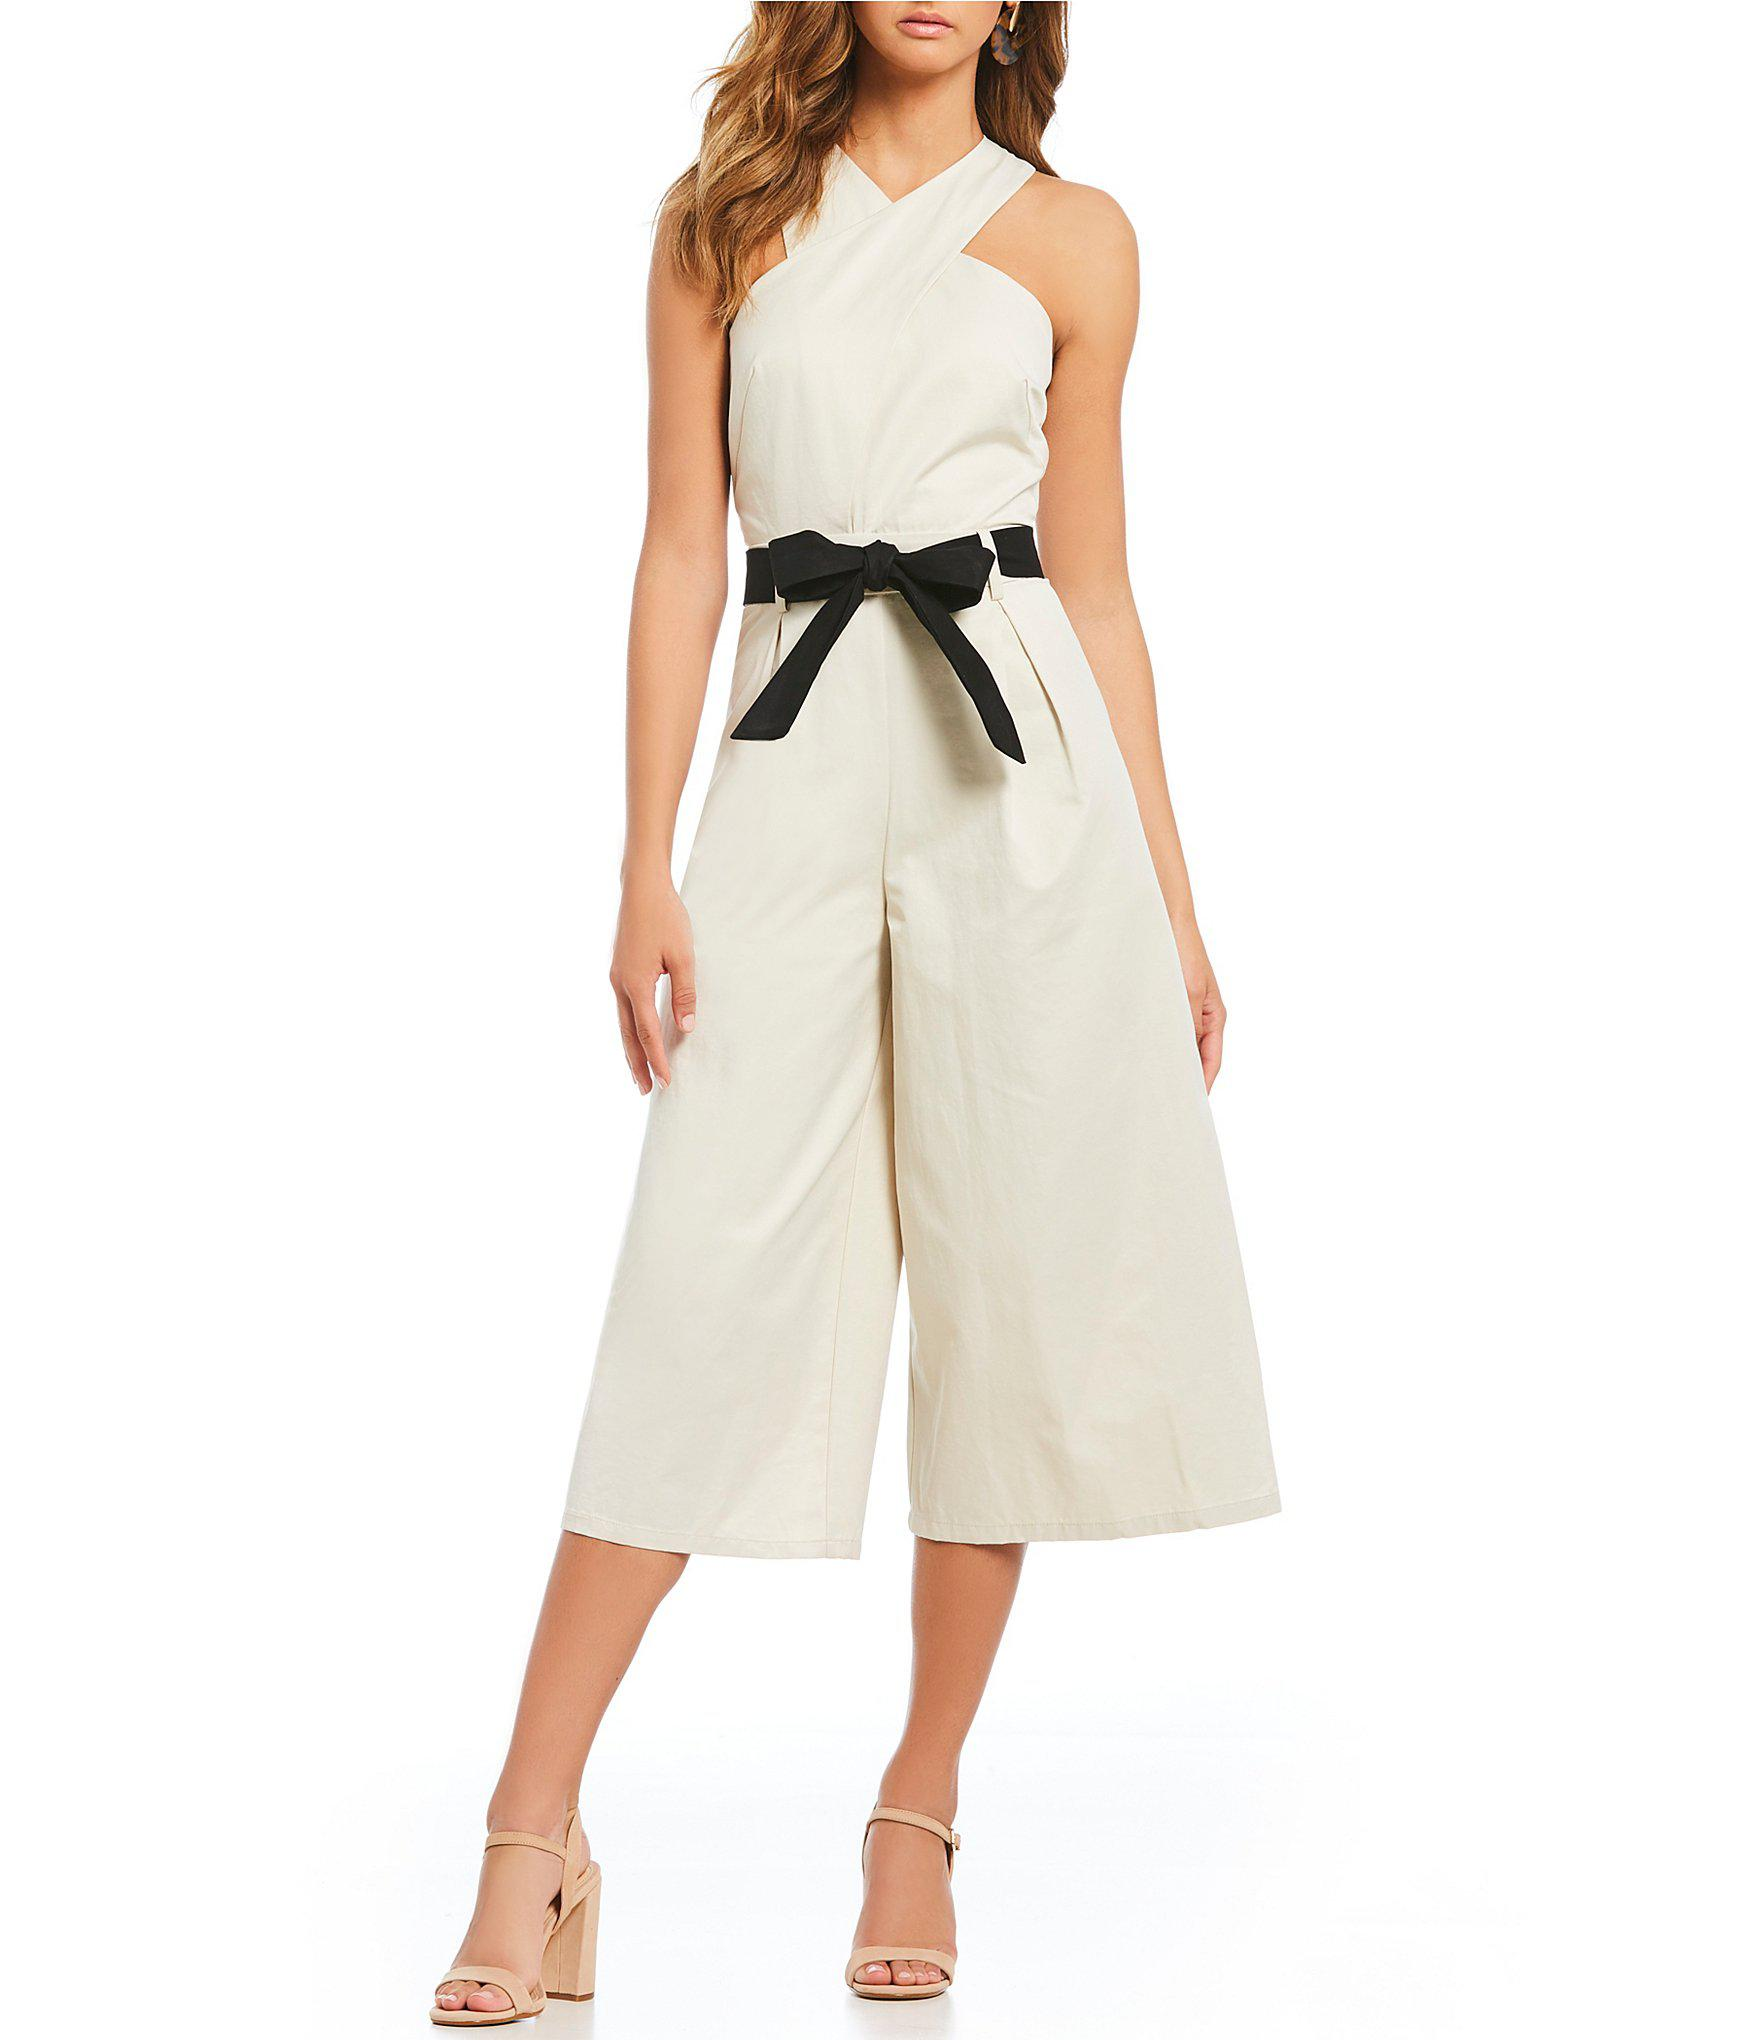 71b1e1d65e5 Lyst - Gianni Bini Cross Front Belted Culotte Jumpsuit in Natural